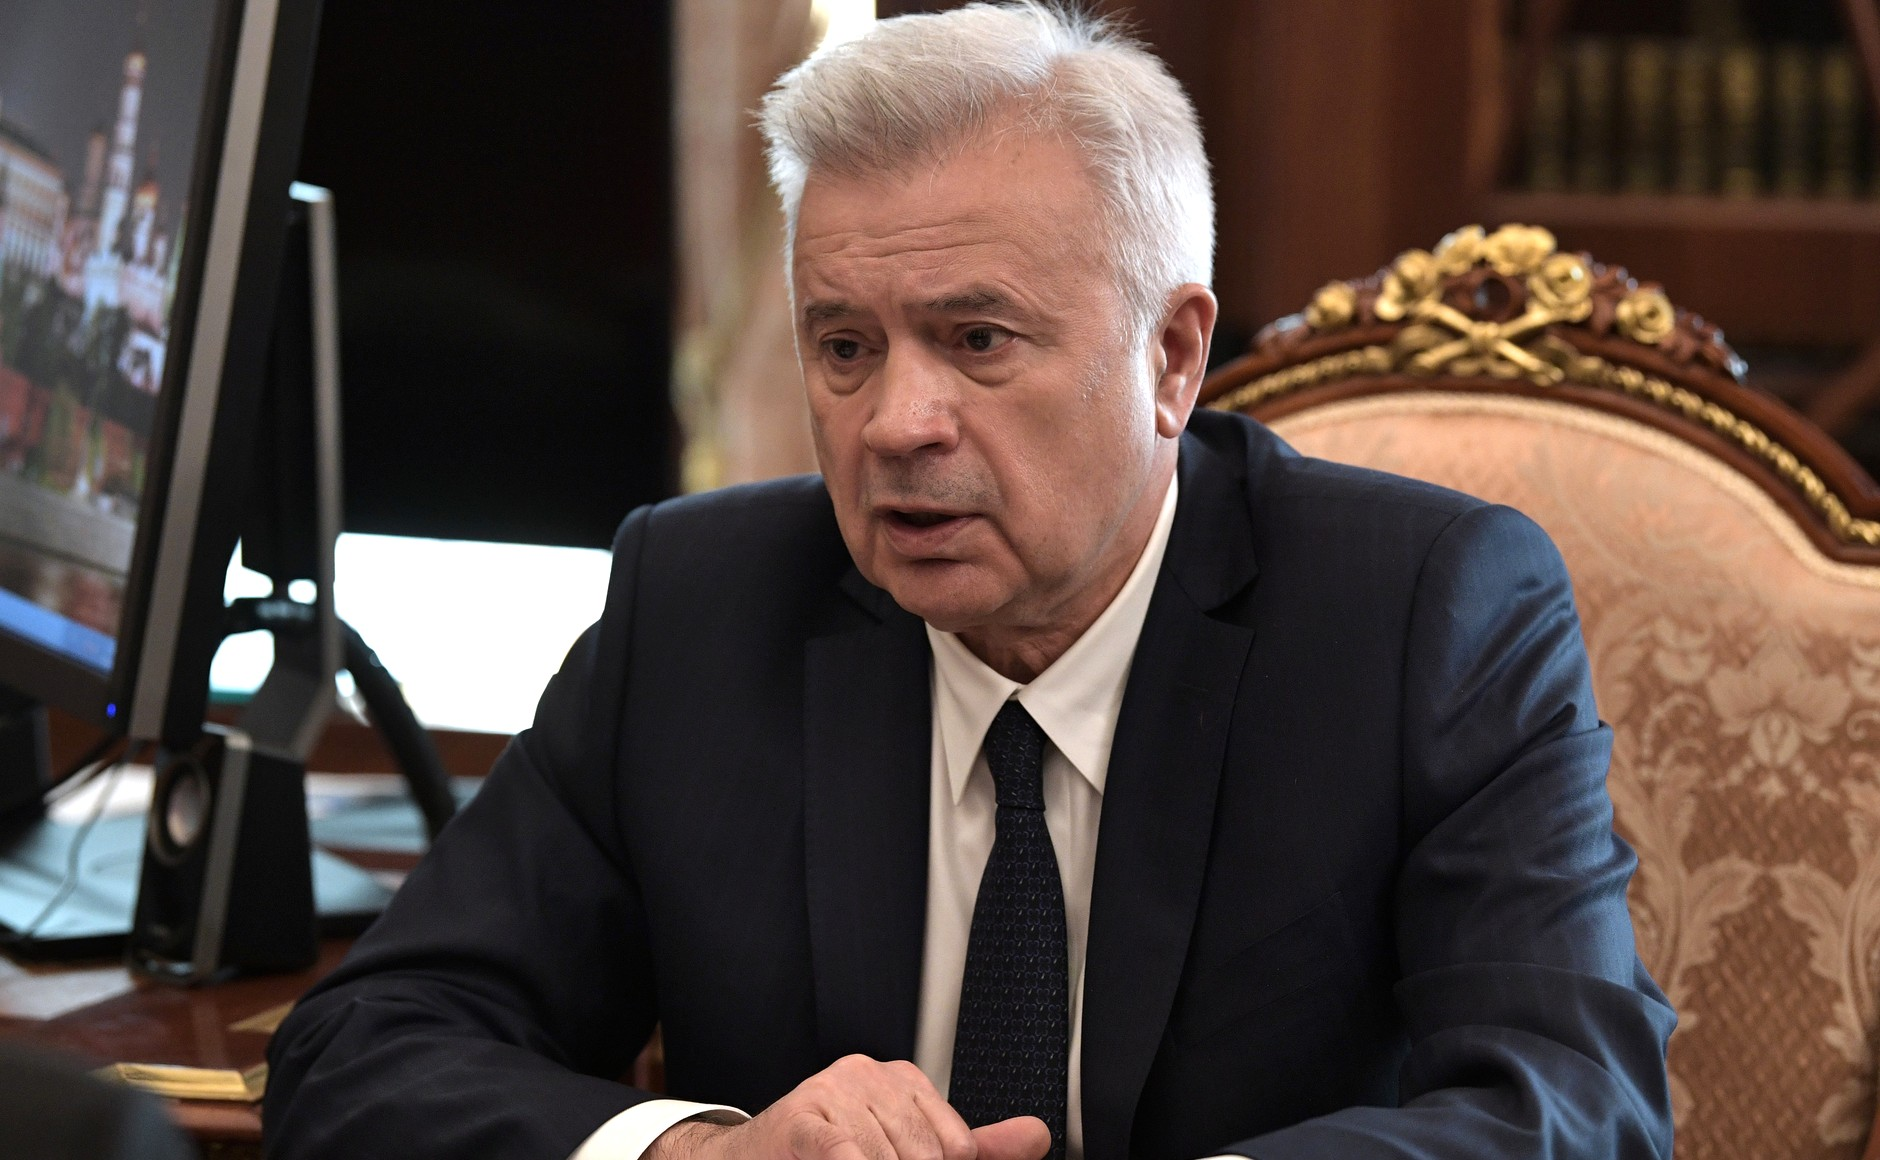 Alekperov Embroiled in Turmoil over Lukoil and Surgutneftgaz Shares